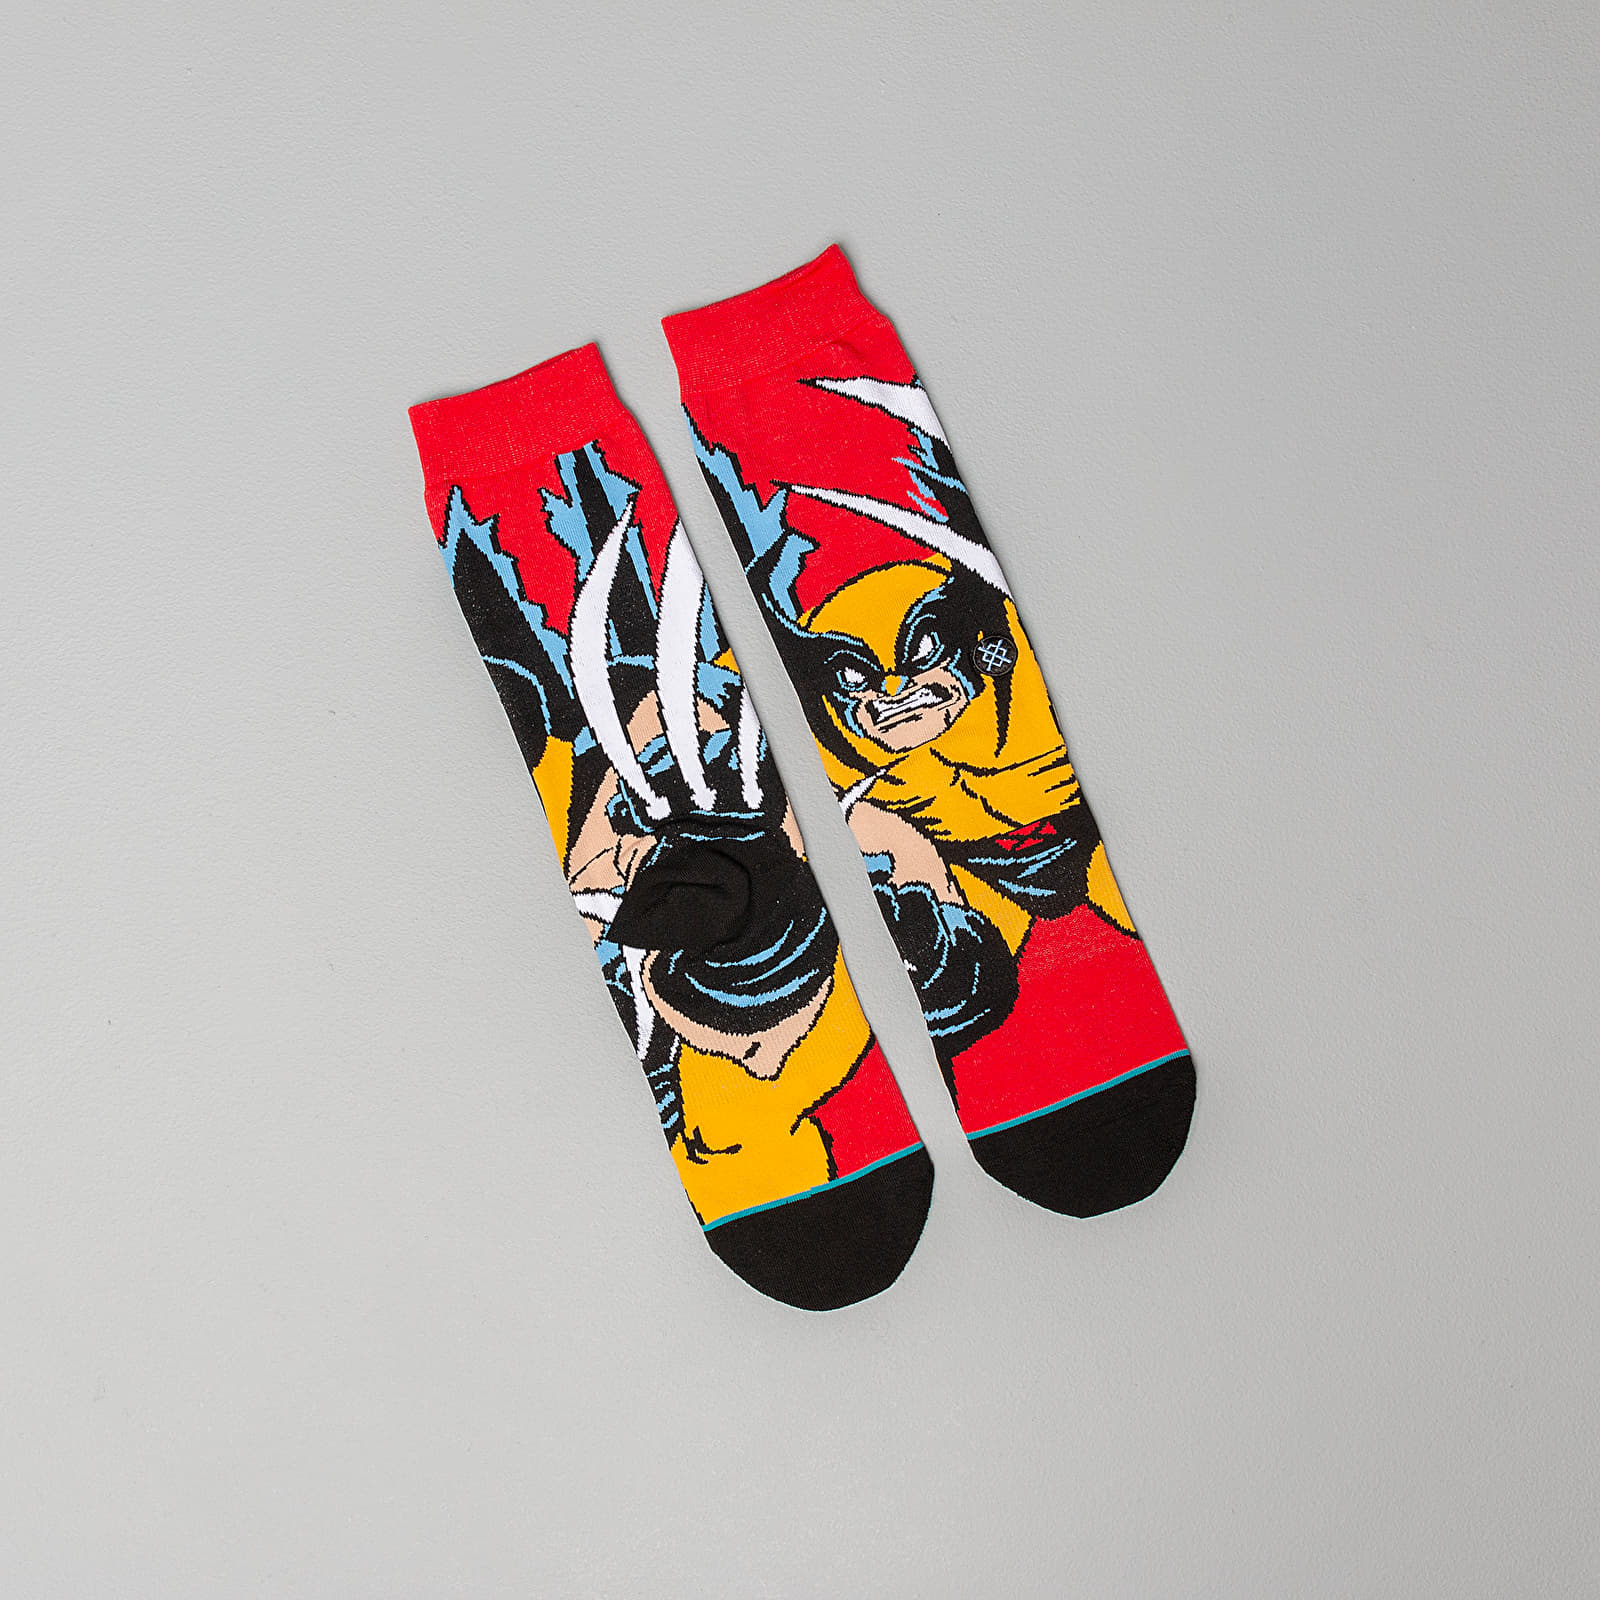 Socks Stance x X-Men Xmen Wolverine Socks Red